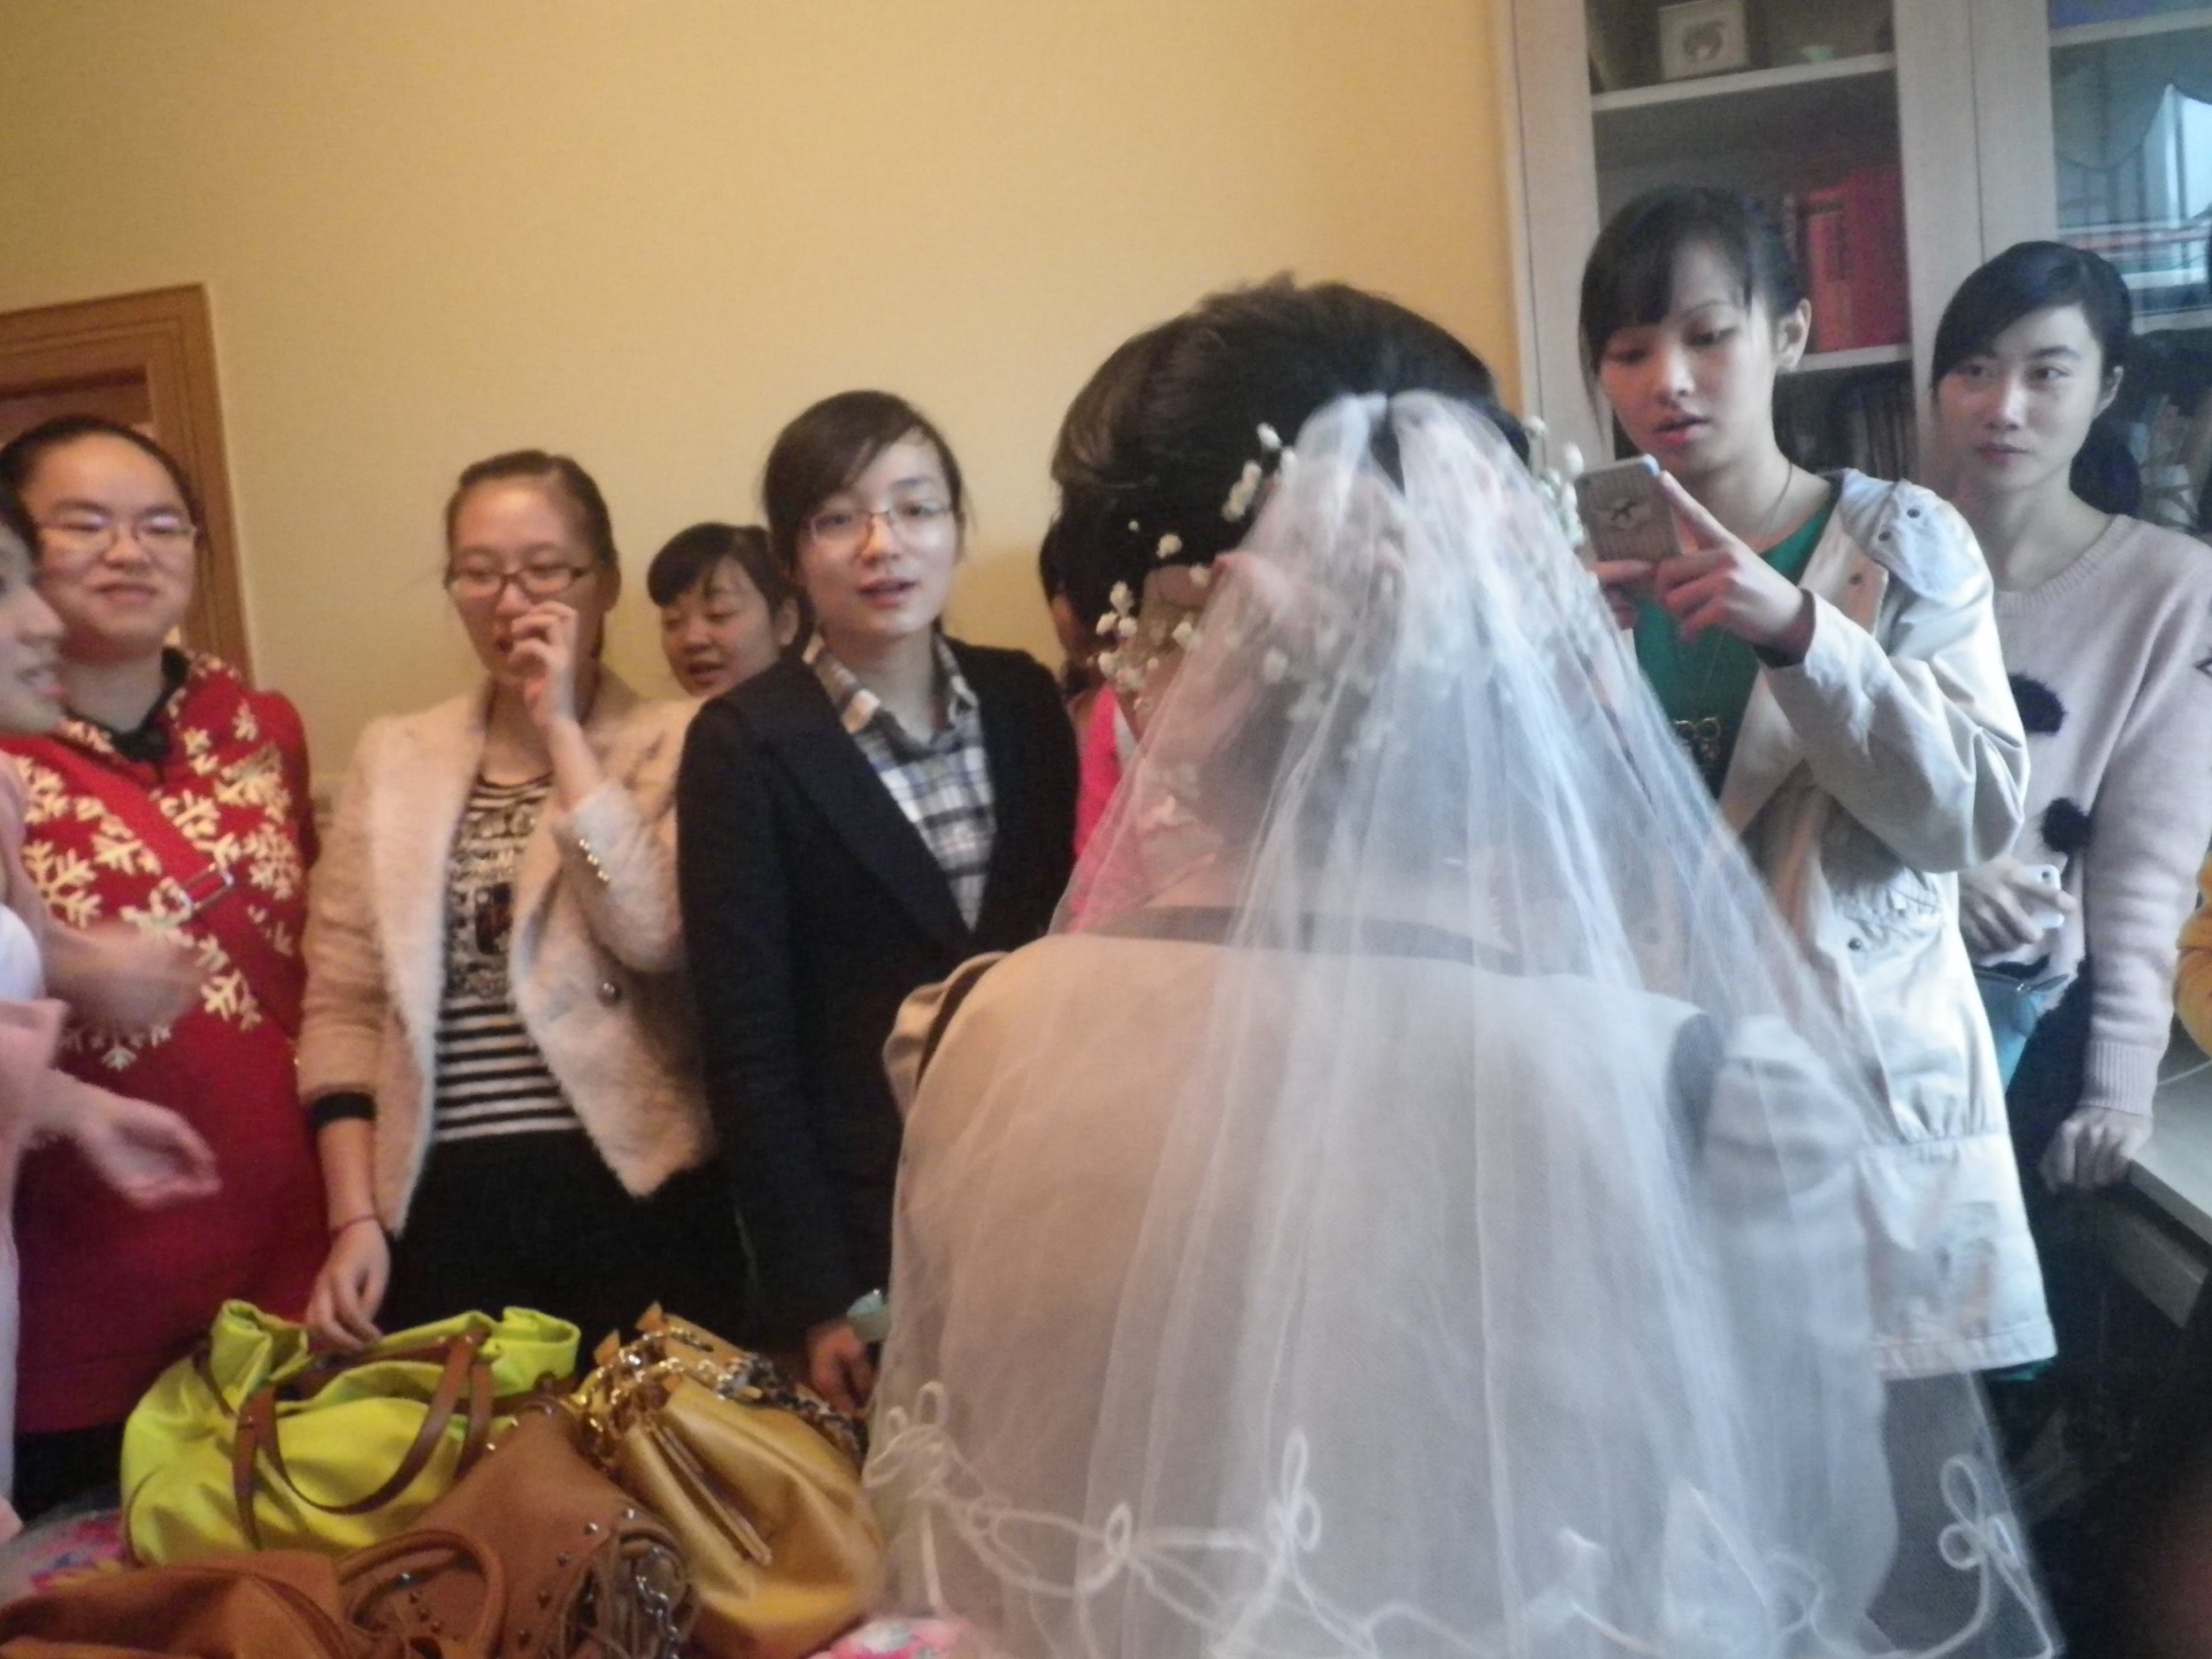 At a friend's wedding in China. It was before the ceremony, and it's tradition for all the unmarried women to wait with the bride in her room before the groom gets there. So this is of all the unmarried women at the wedding and the bride.